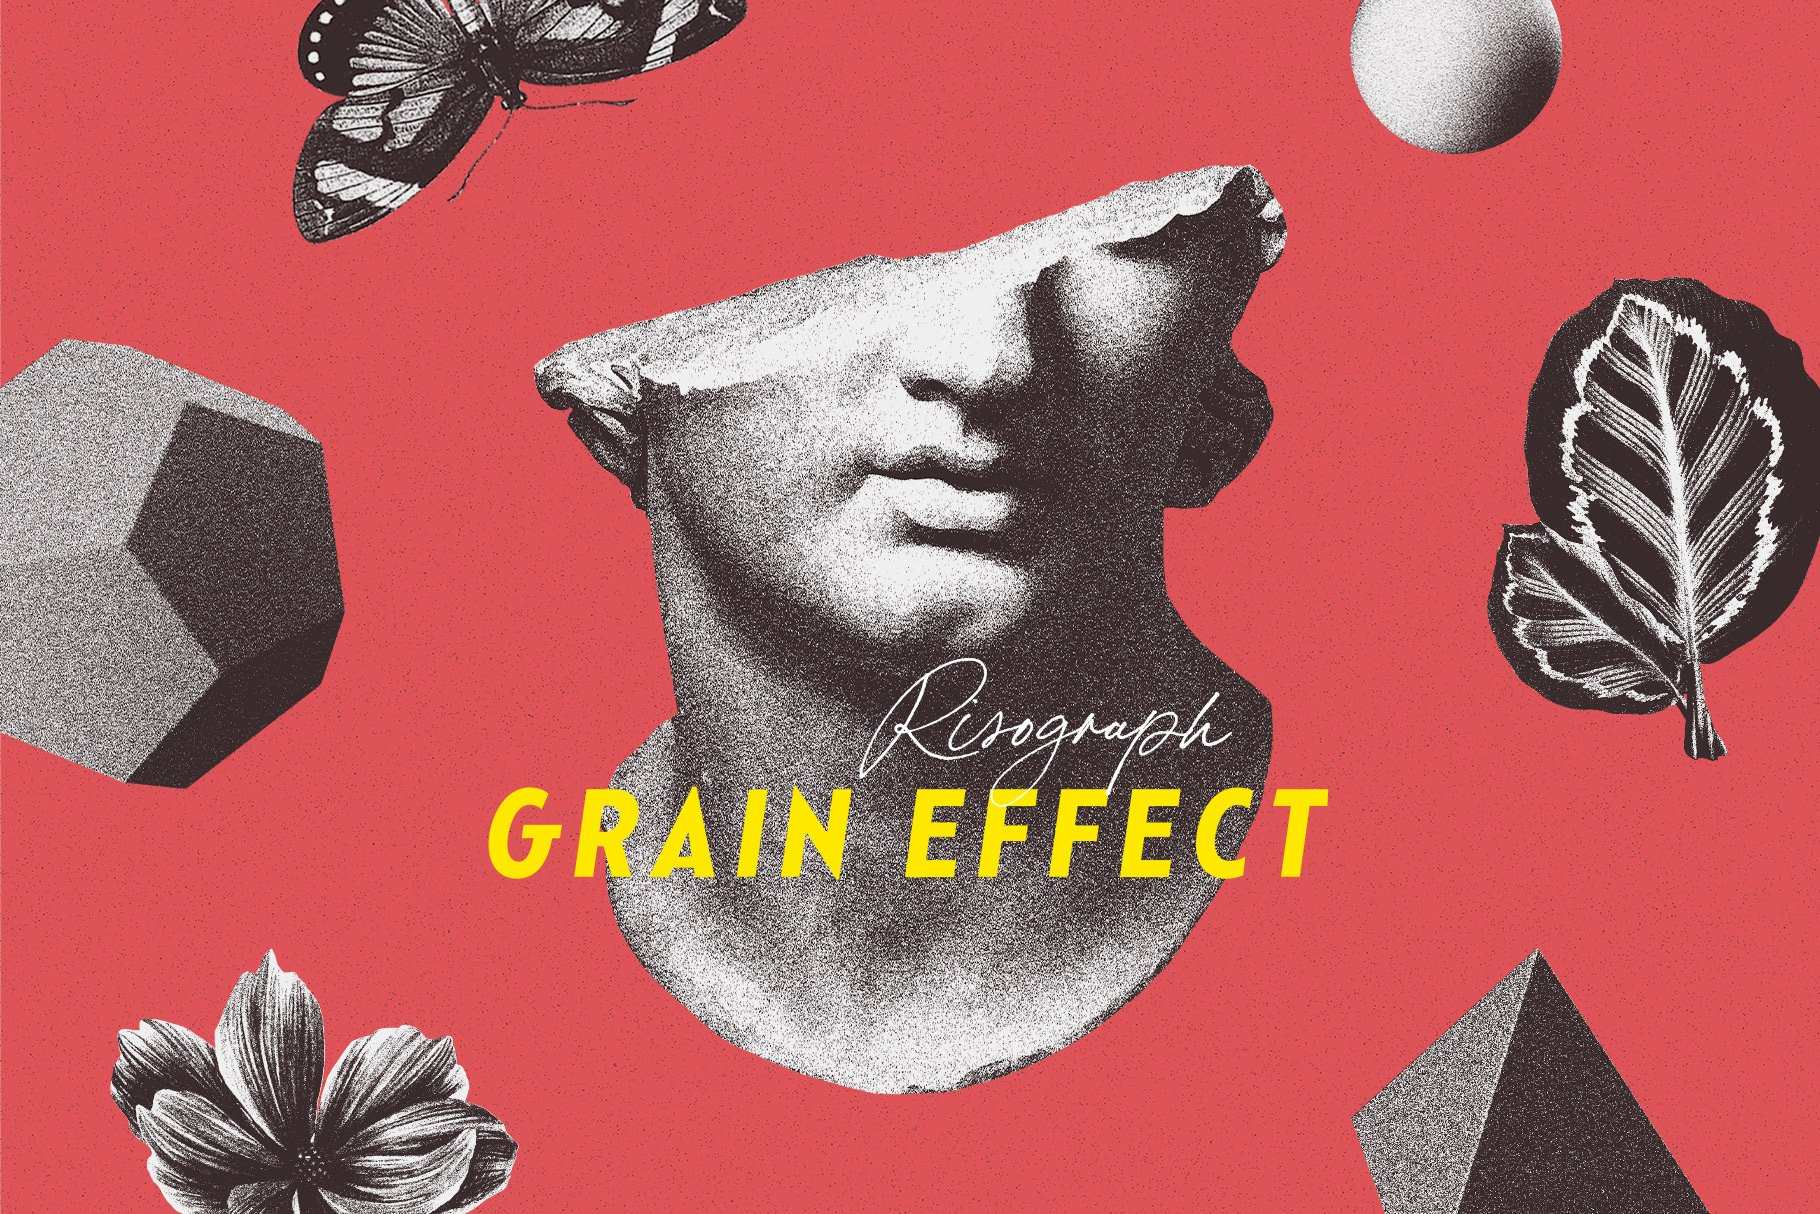 Risograph Grain Effect for Photoshop